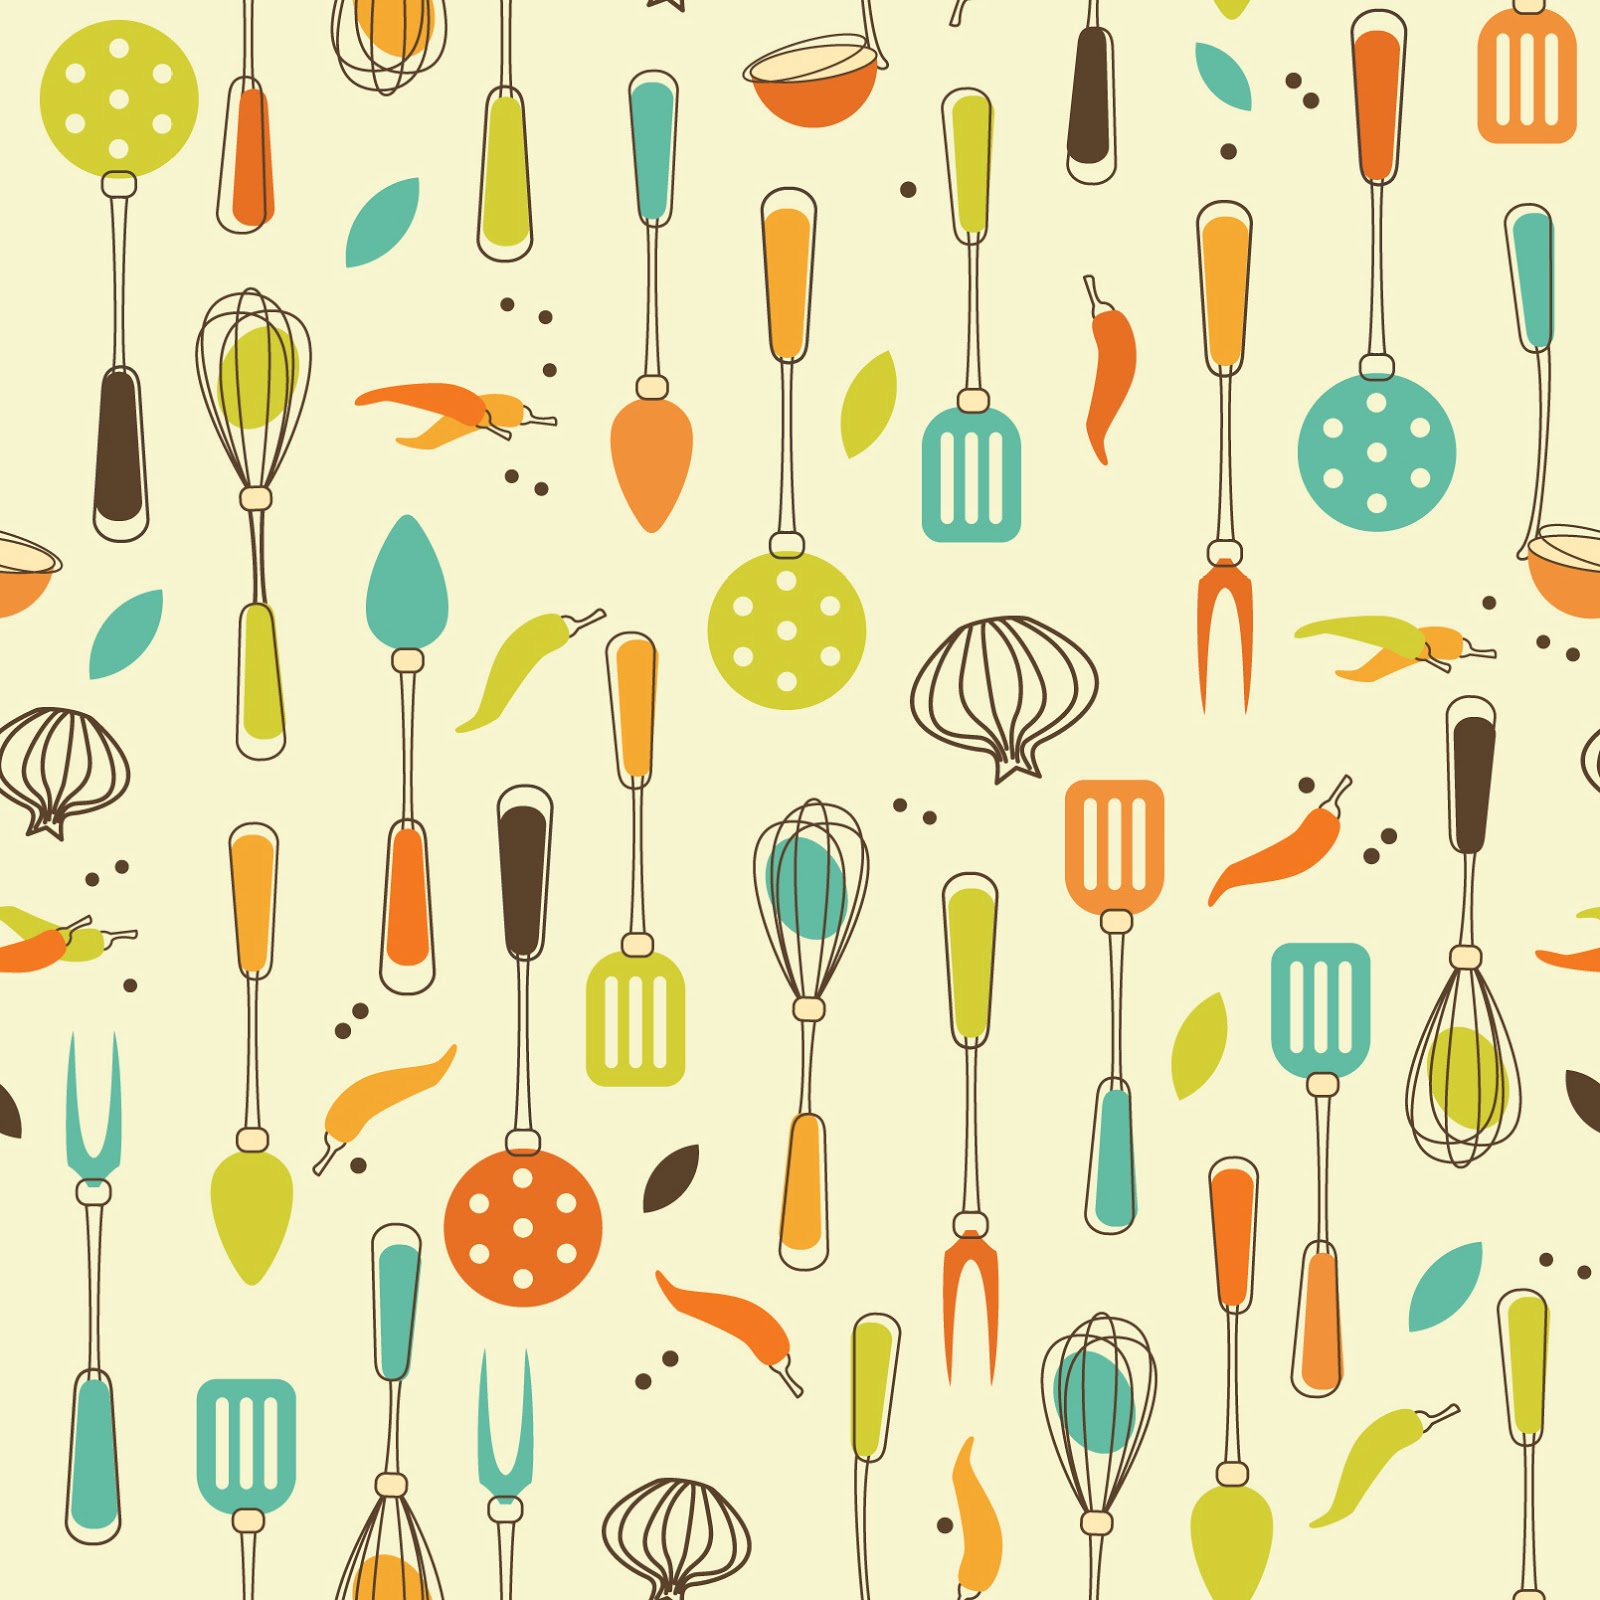 free clip arts: halah foods & kitchen accessories